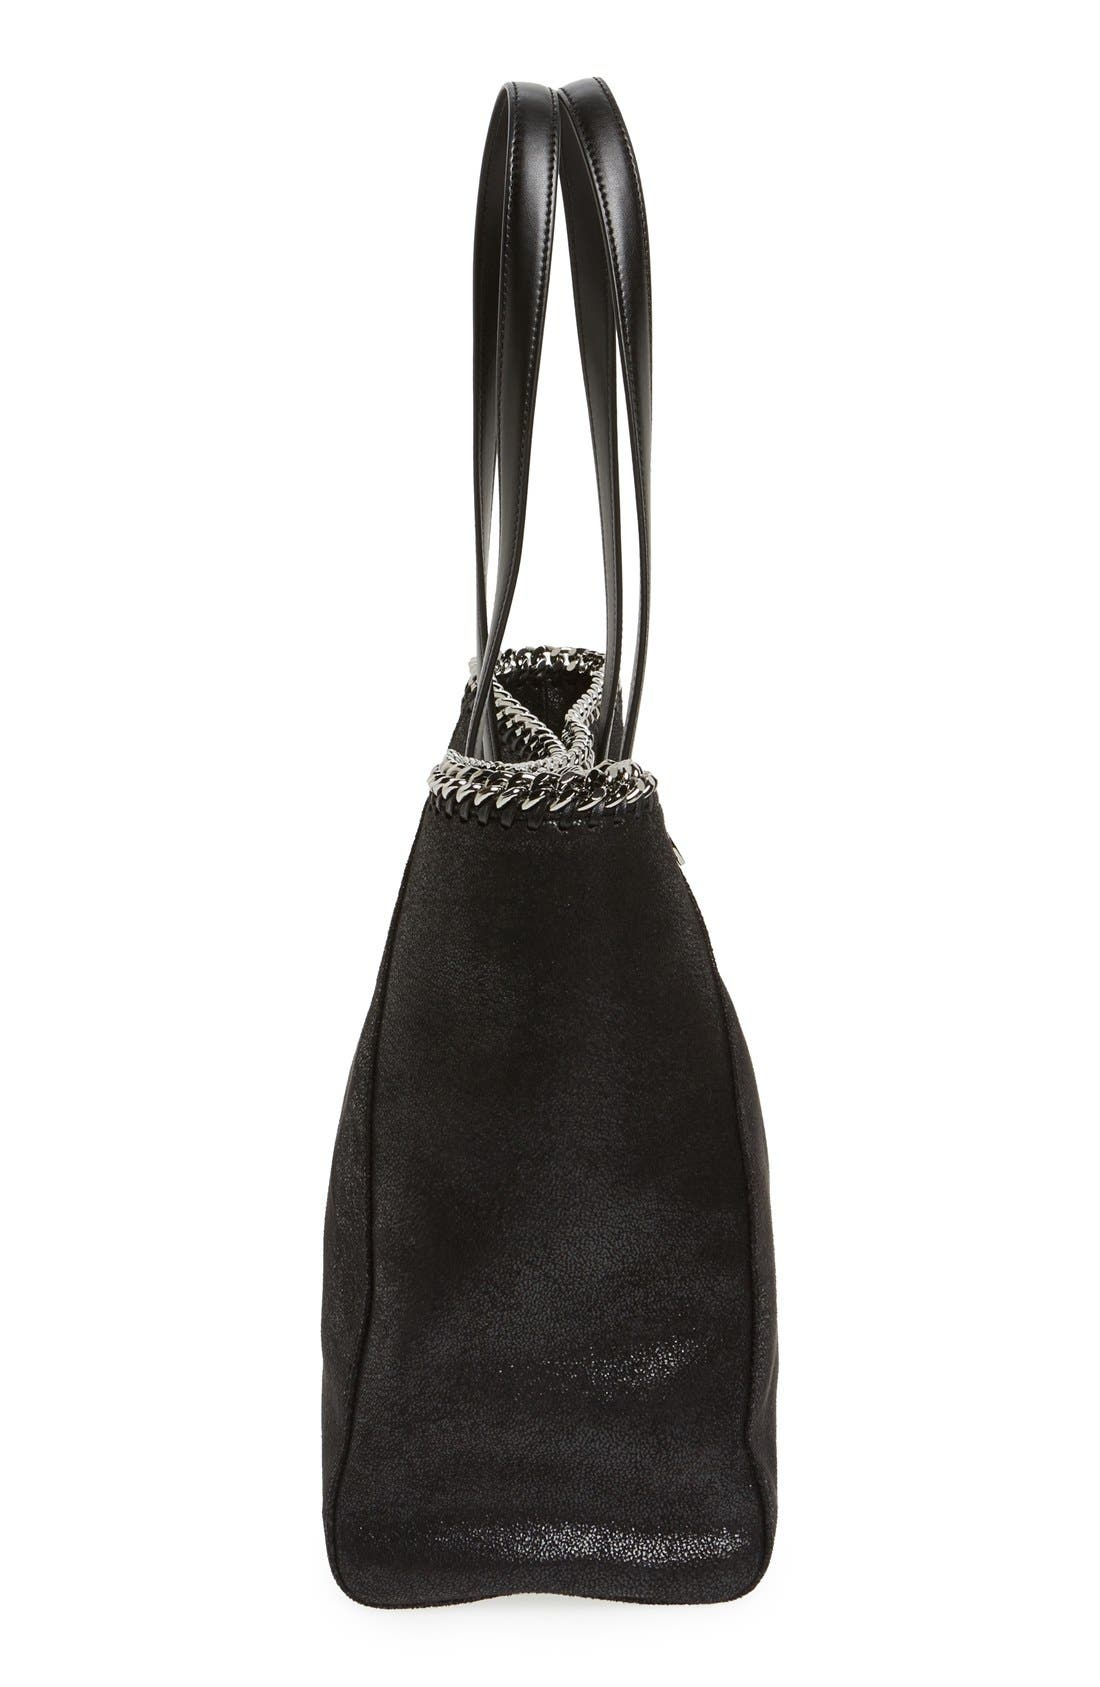 'Falabella - Shaggy Deer' Faux Leather Tote,                             Alternate thumbnail 6, color,                             001